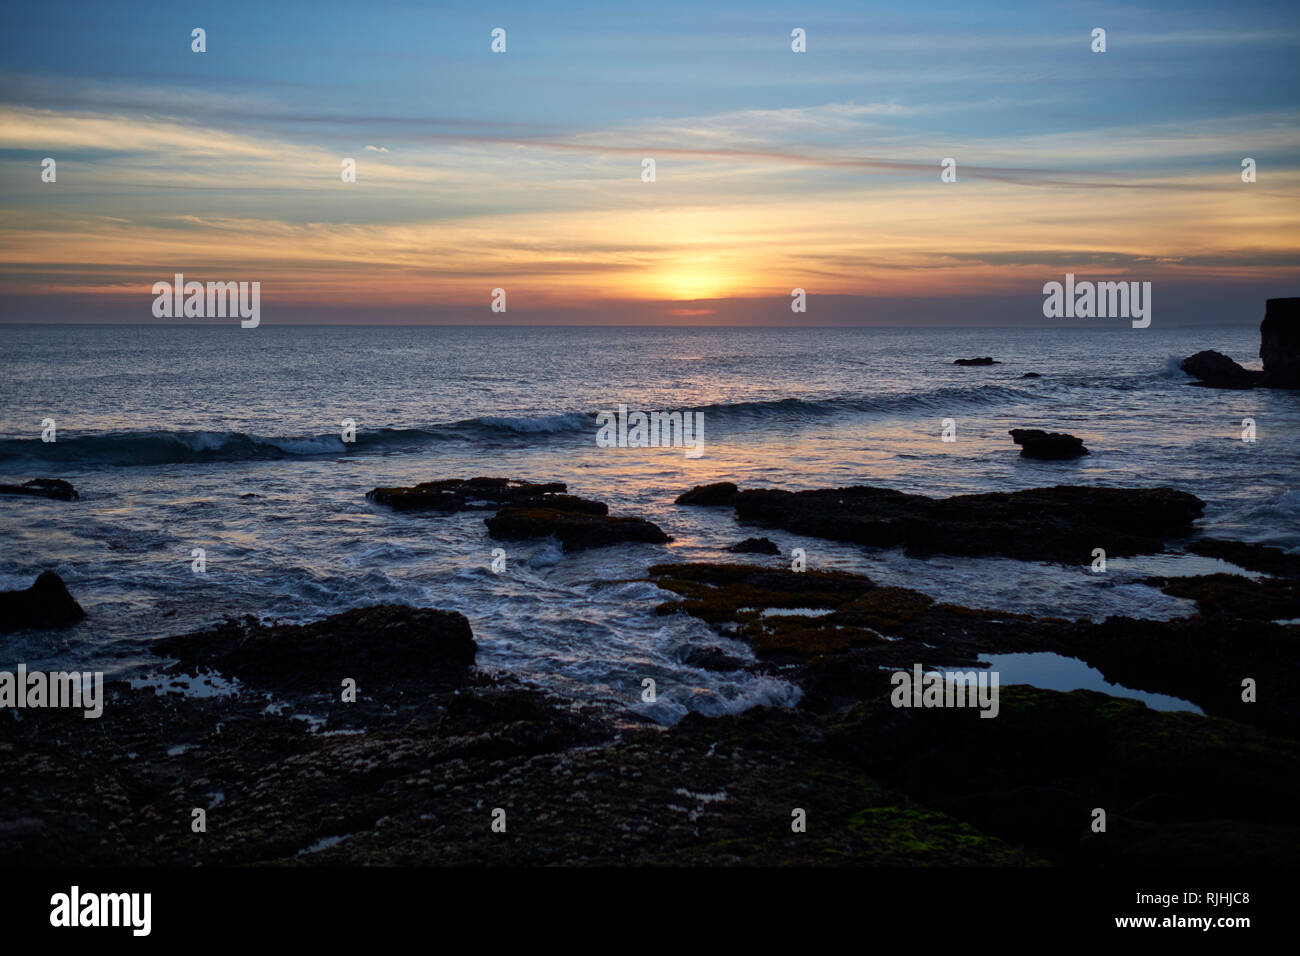 Sunset over ocean at Tanah Lot, Bali, Indonesia Stock Photo